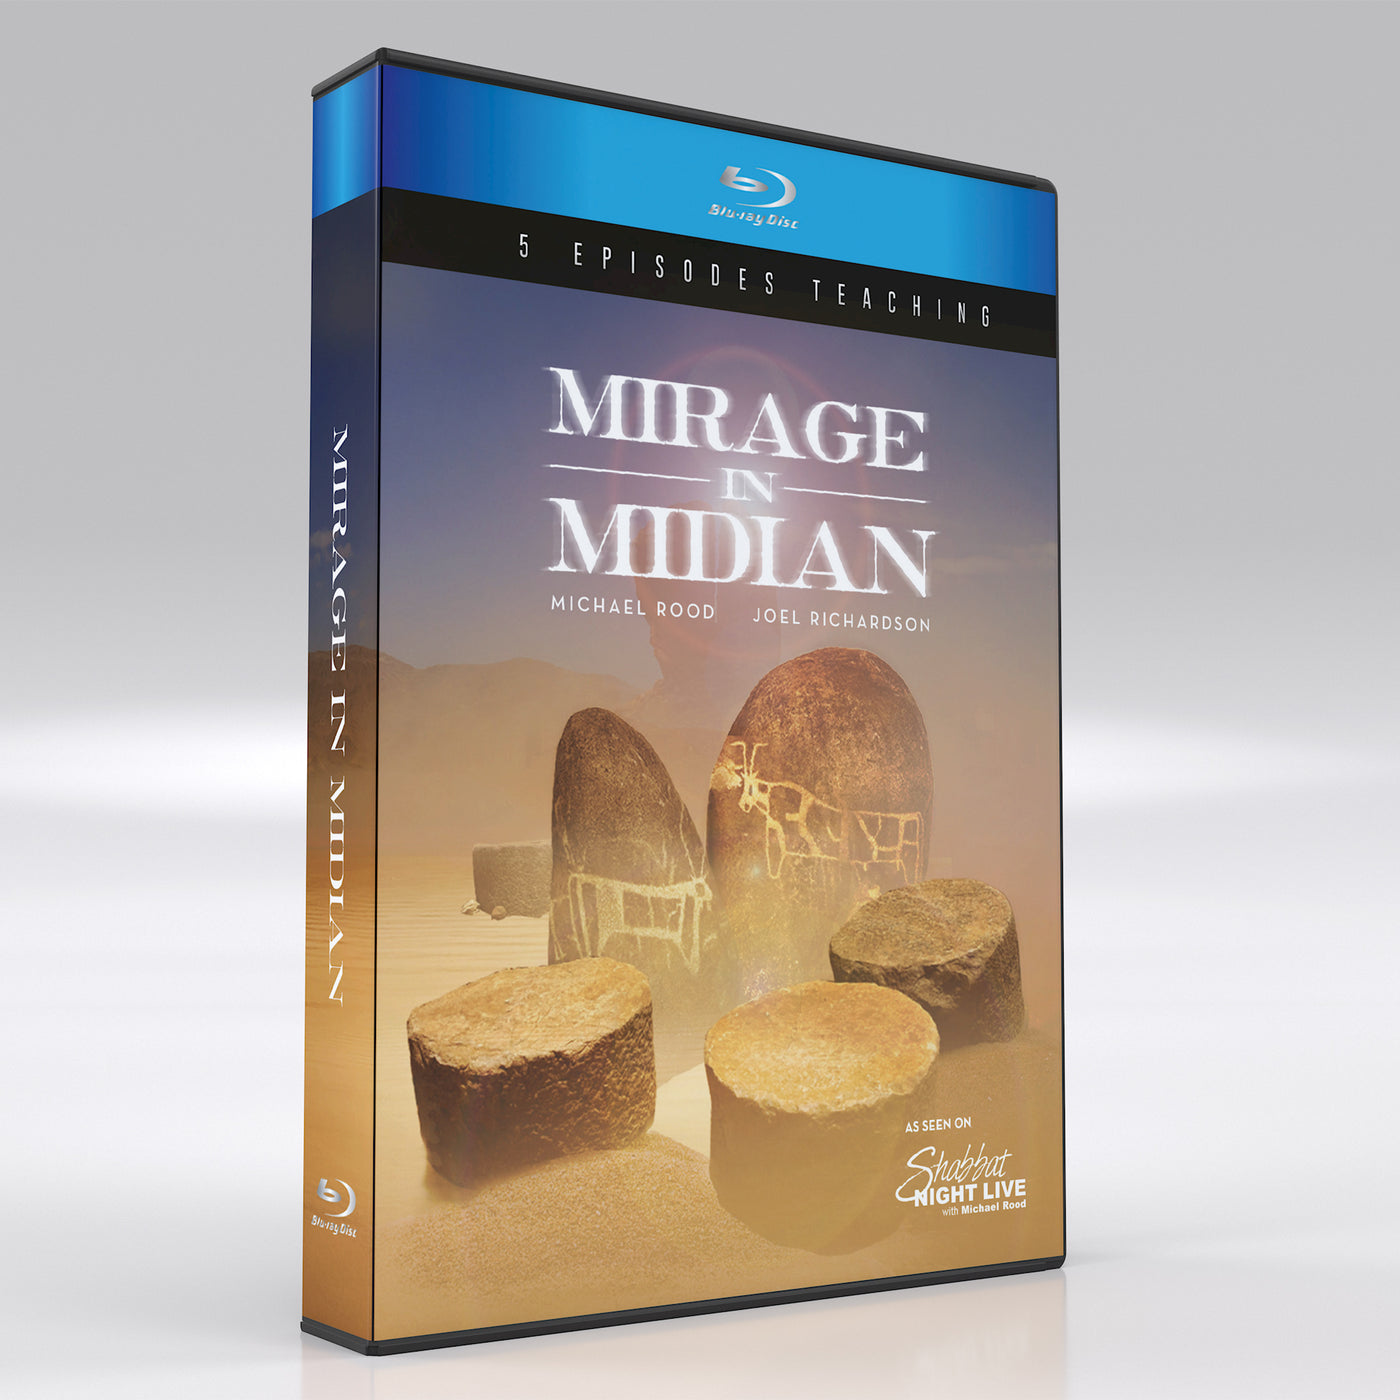 """Mirage In Midian"" With Michael Rood and Joel Richardson"